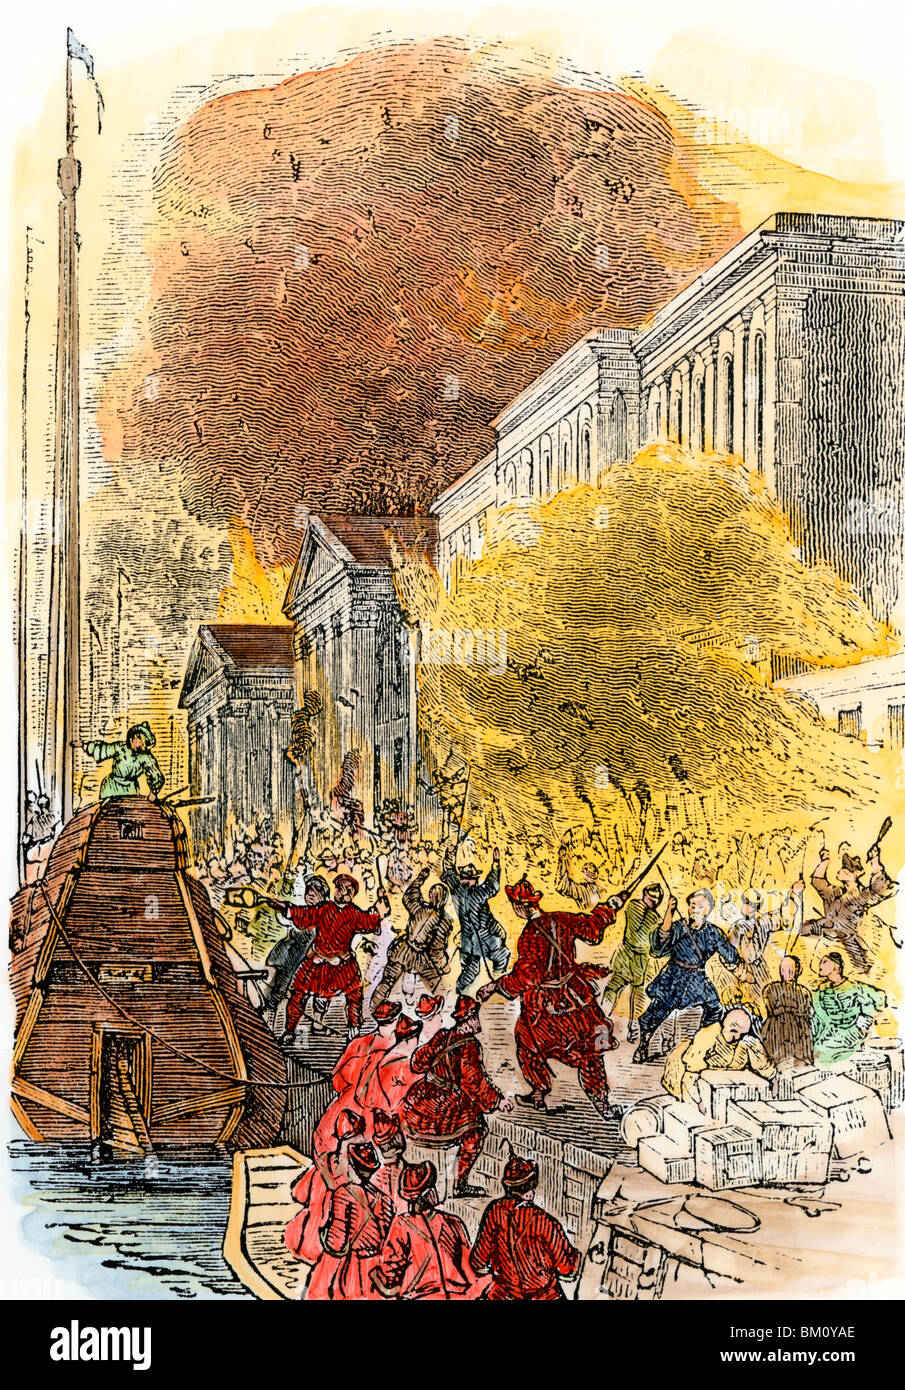 Chinese rioters burning British warehouses during the Second Opium War, 1850s. Hand-colored woodcut - Stock Image